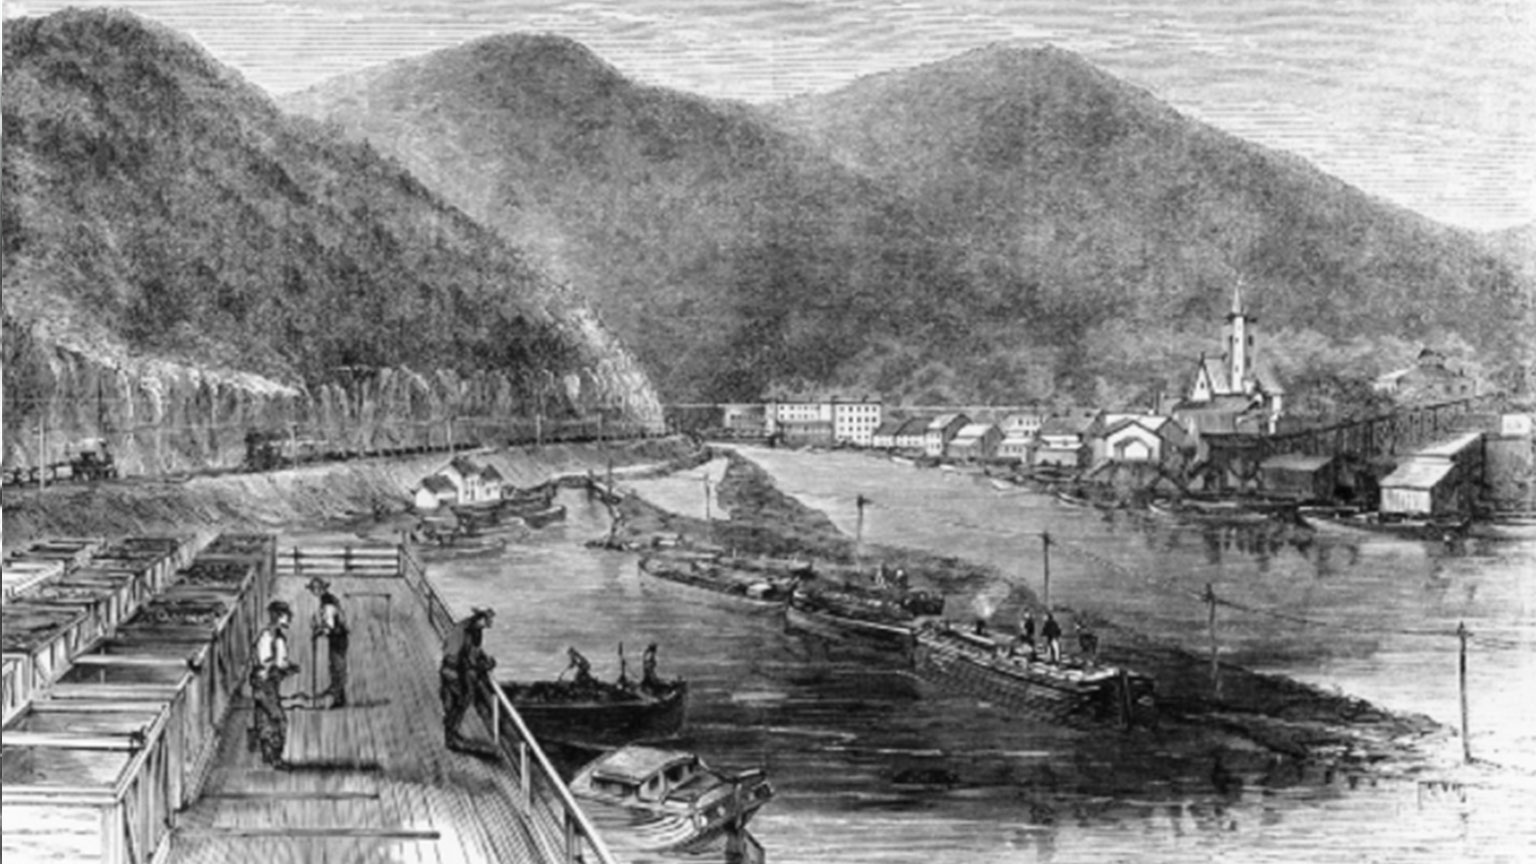 An 1820s lithograph of Mauch Chunk.